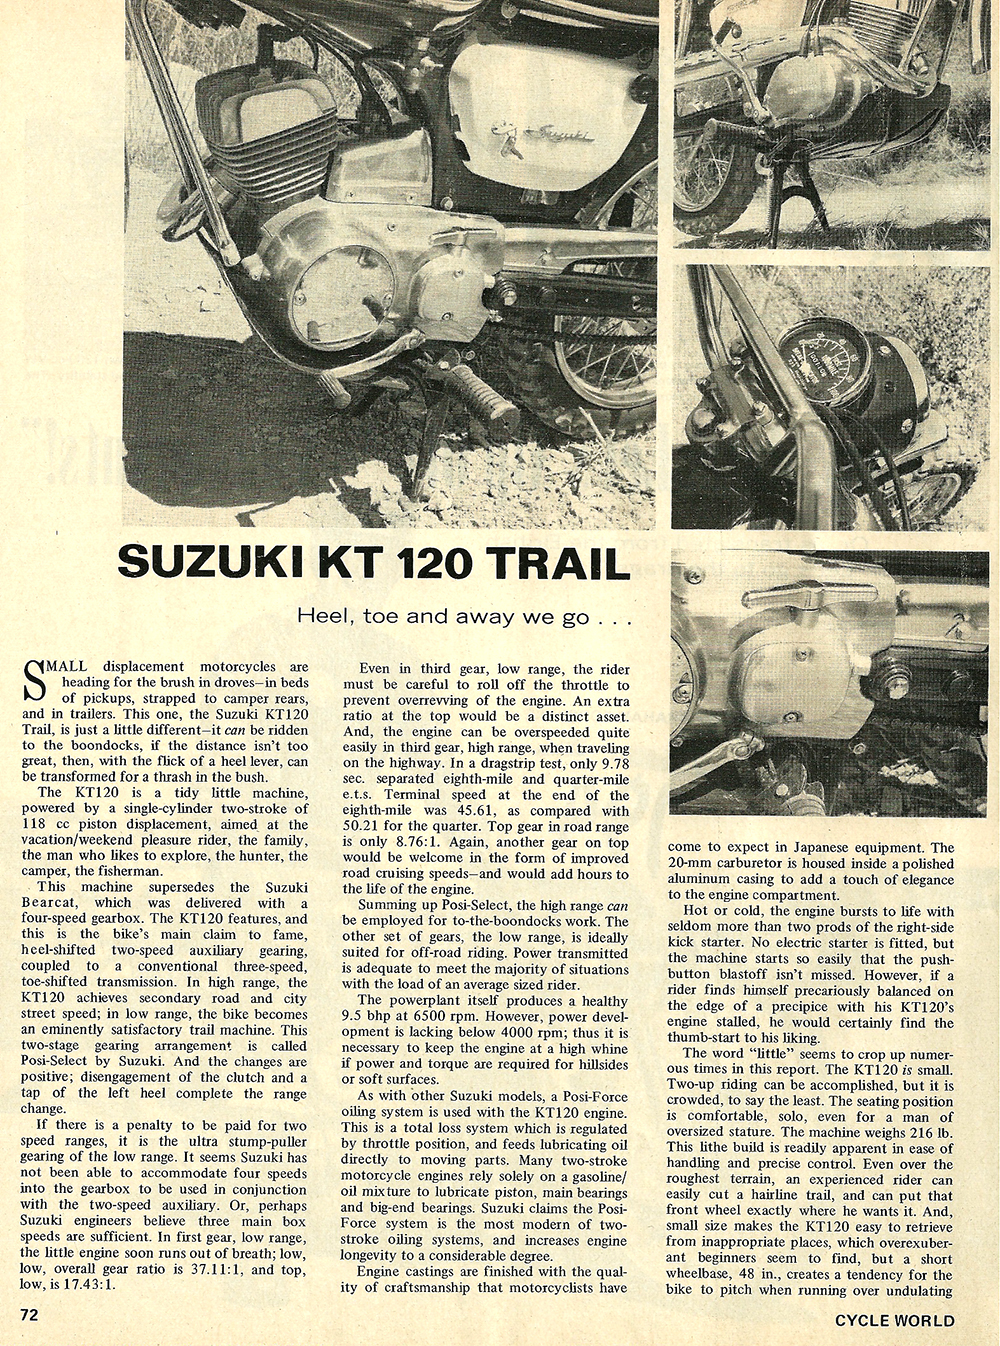 1968 Suzuki KT 120 Trail bike road test 01.jpg